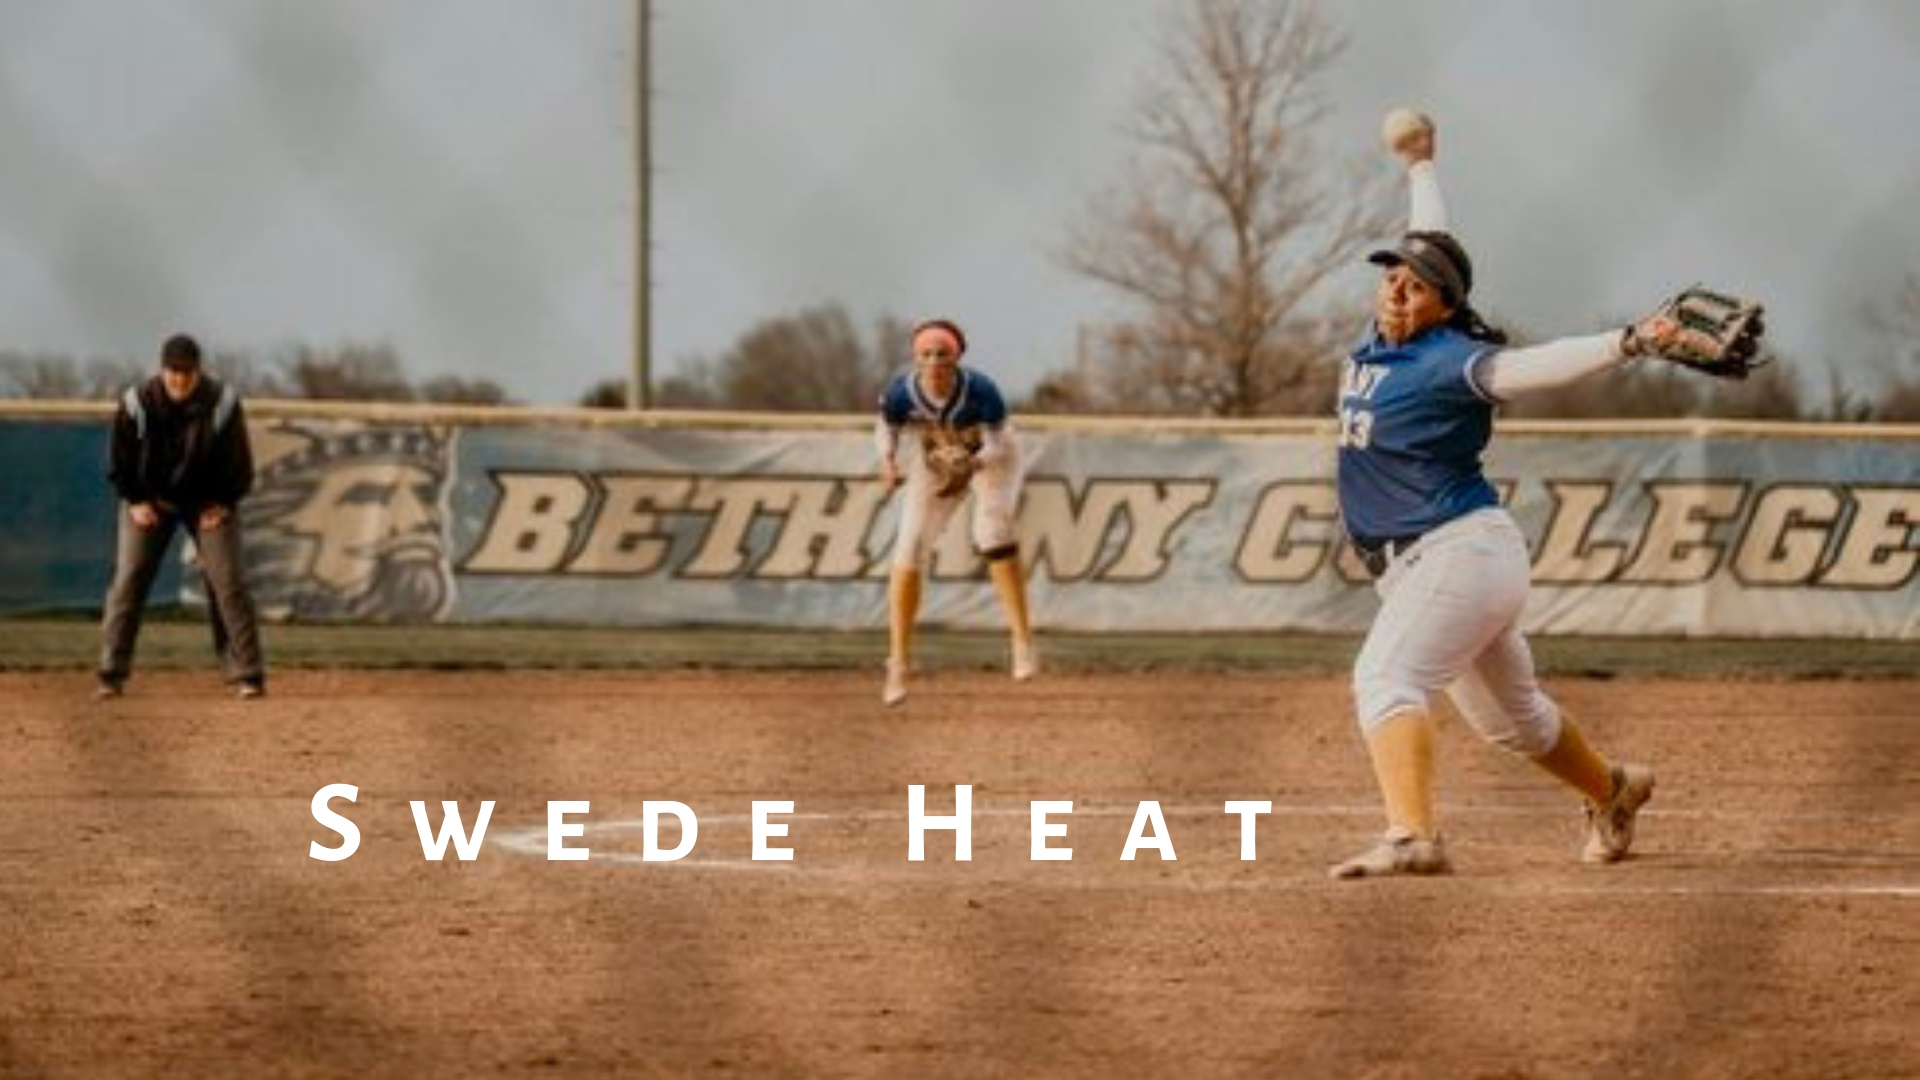 Swedes' right hander Ashley Nava brings the heat during this week's matchup with Sterling College in Lindsborg. Bethany split the double header with the Warriors, losing game one: 12-7 and winning the nightcap: 7-6. Swedes' softball travels to Avila University for a Saturday double header in Kansas City, MO.